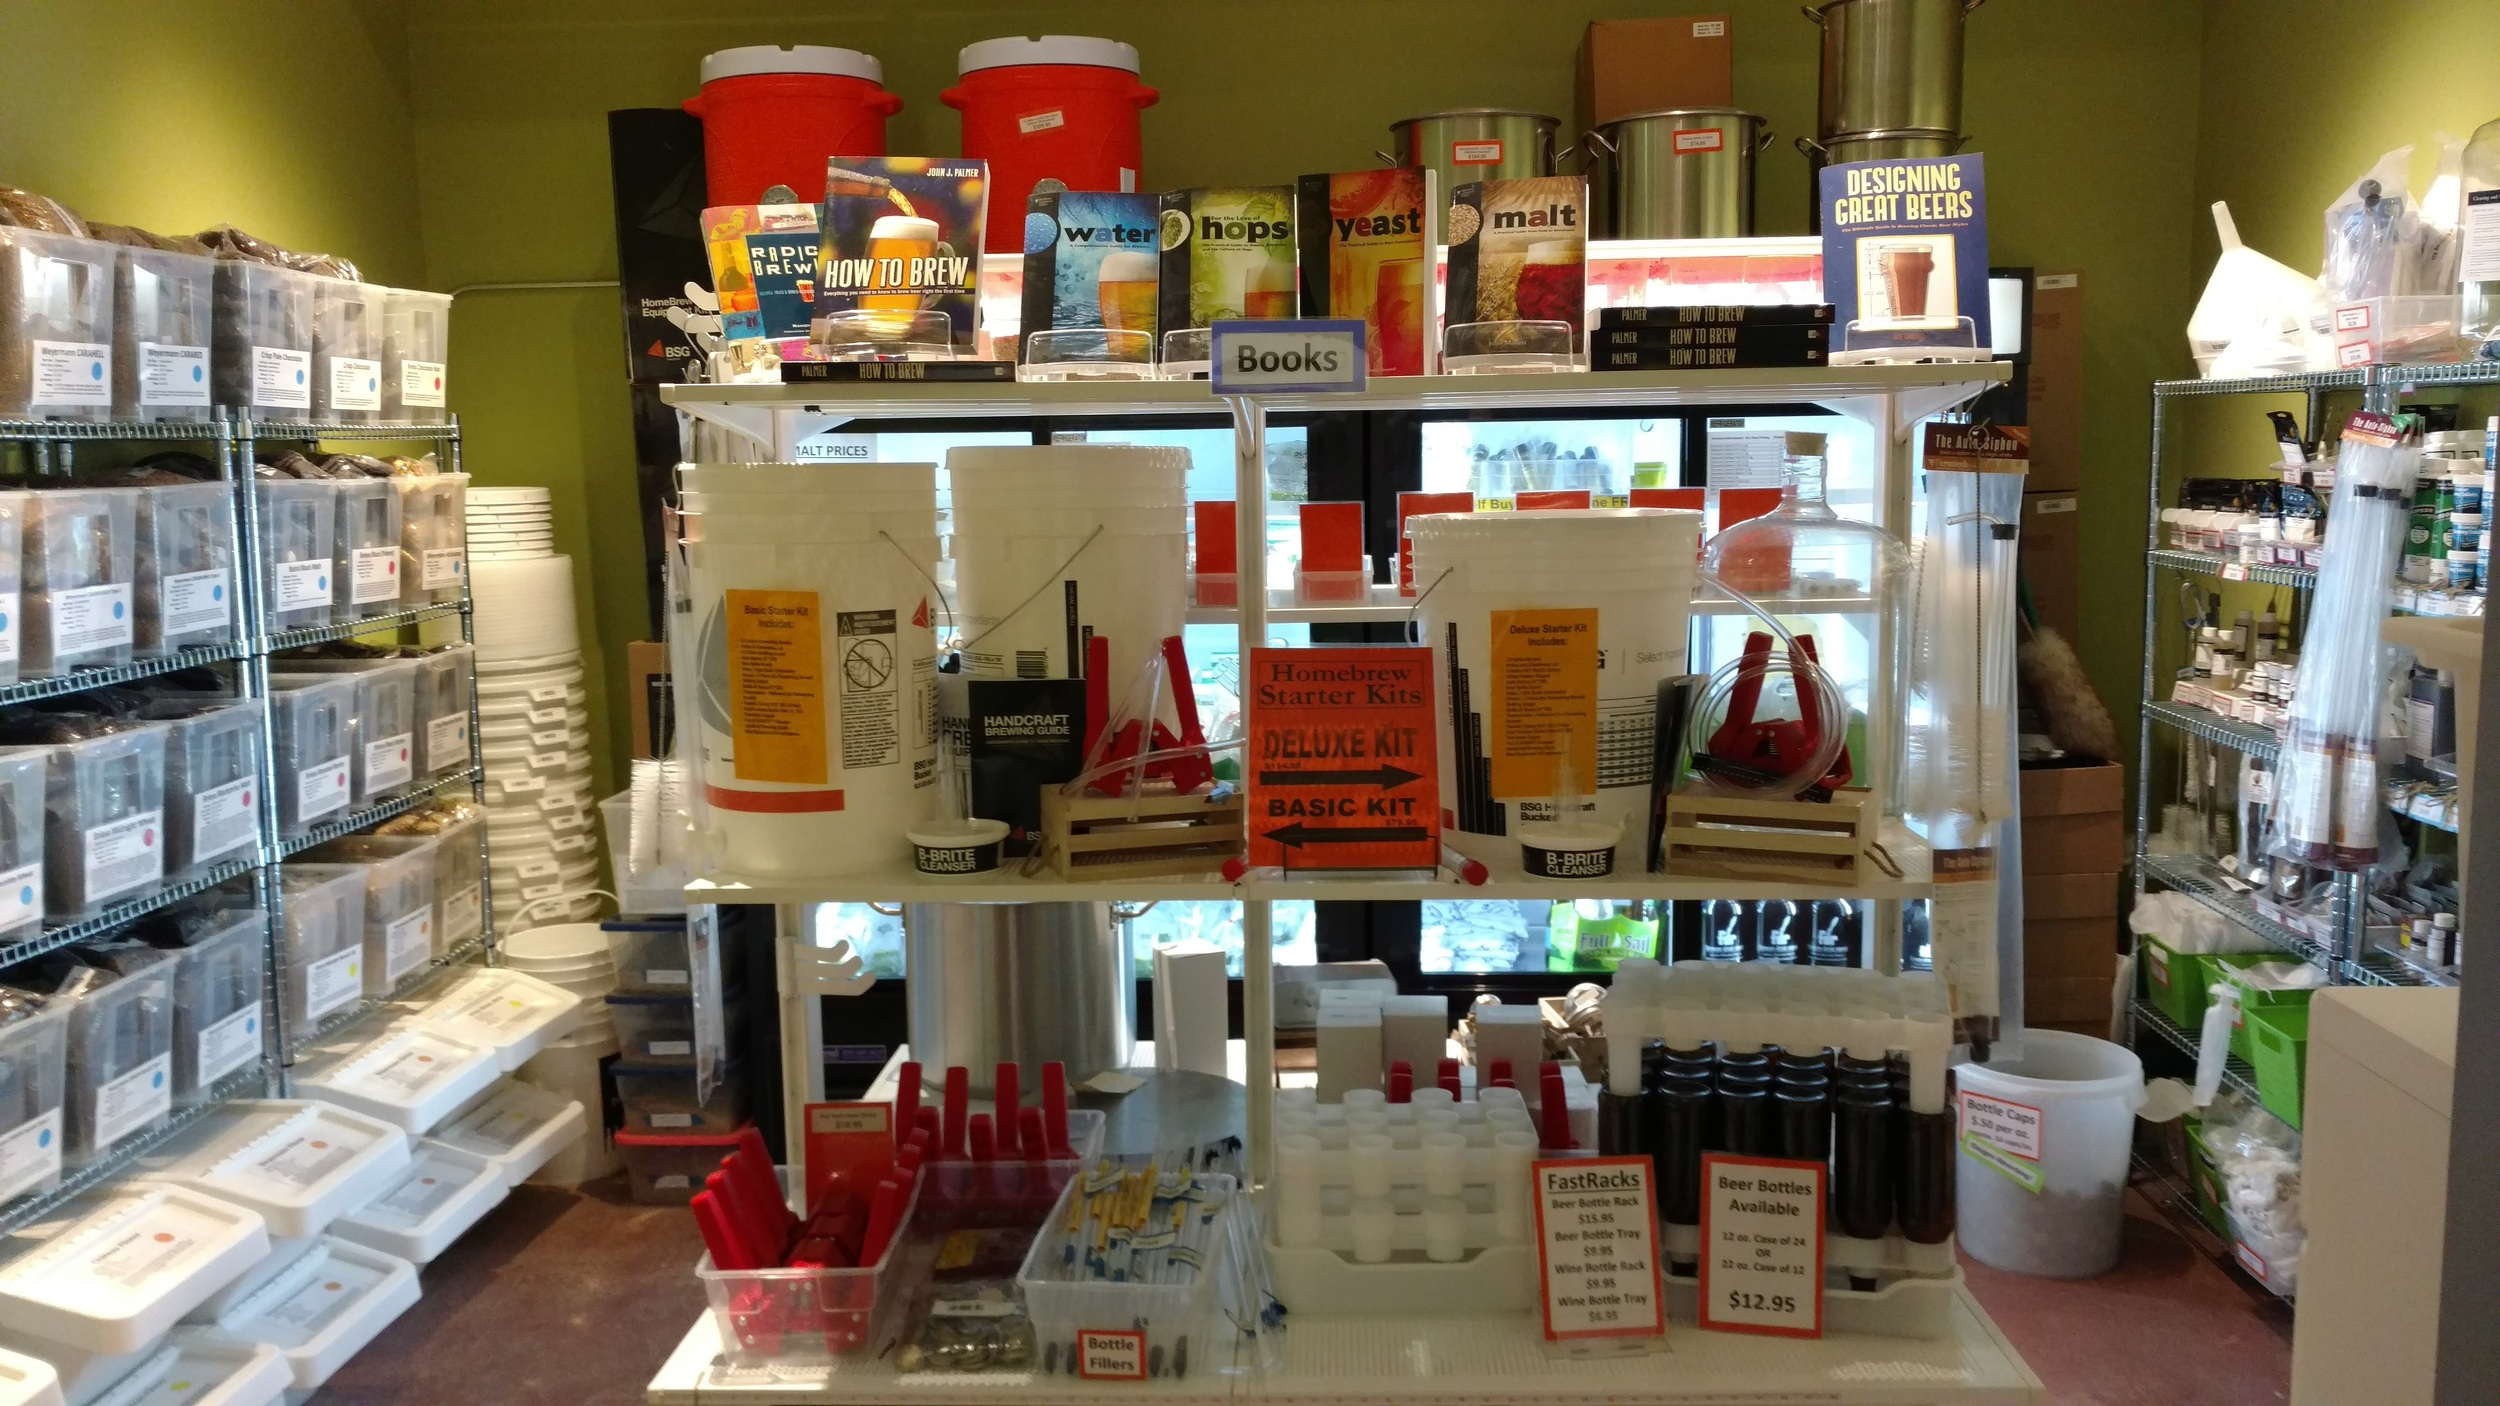 We pretty much have everything you need in our small yet mighty shop. If we don't have something, please let us know and we can order items for you!